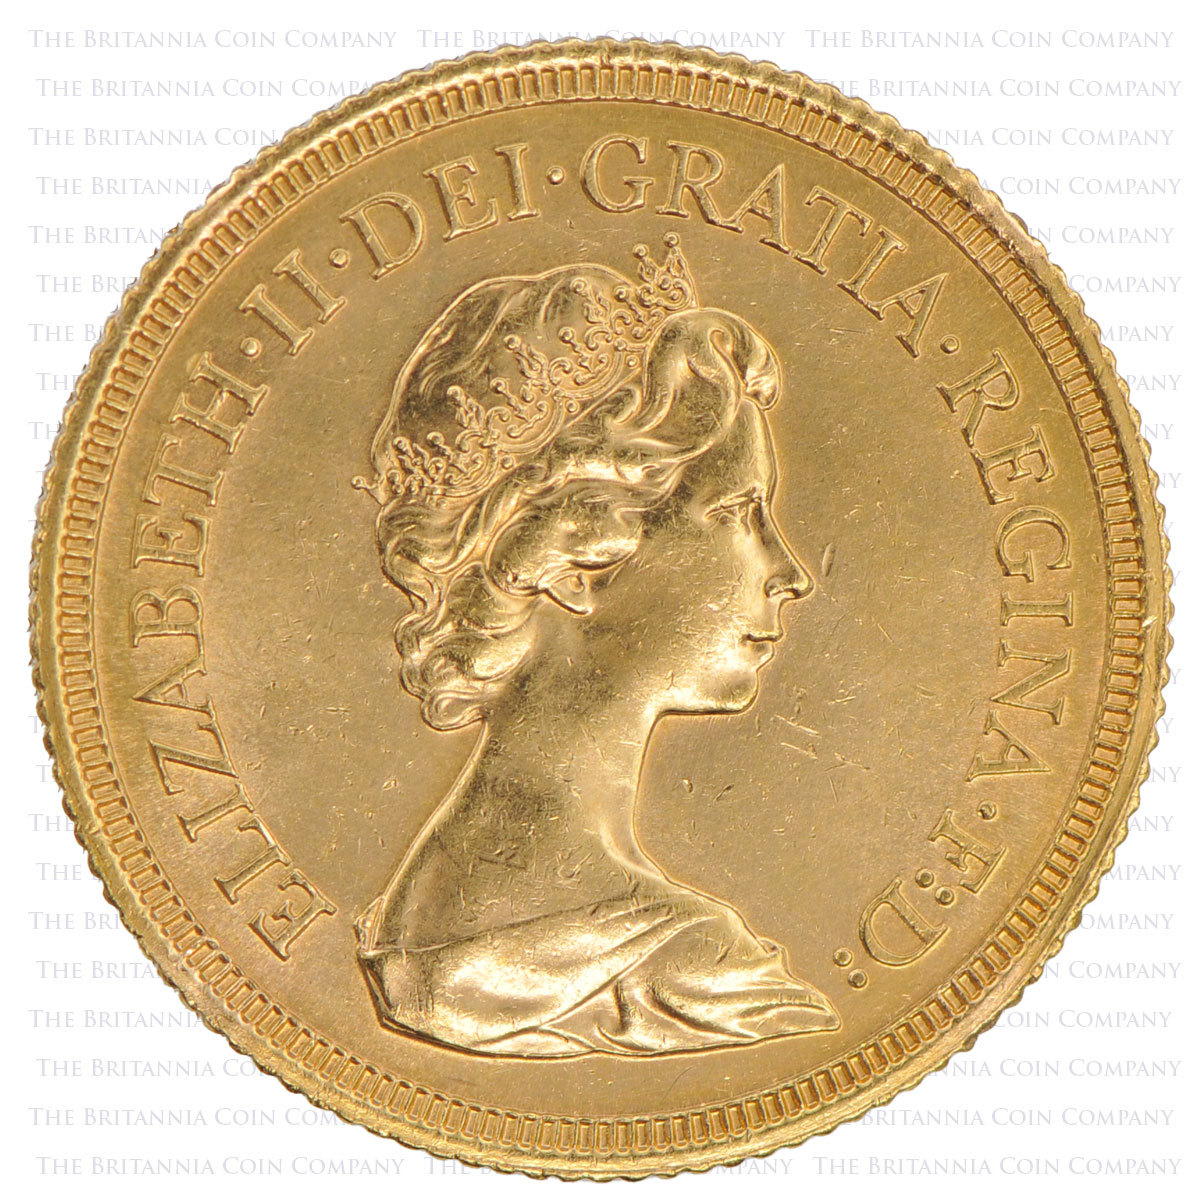 1978-gold-sovereign-obverse